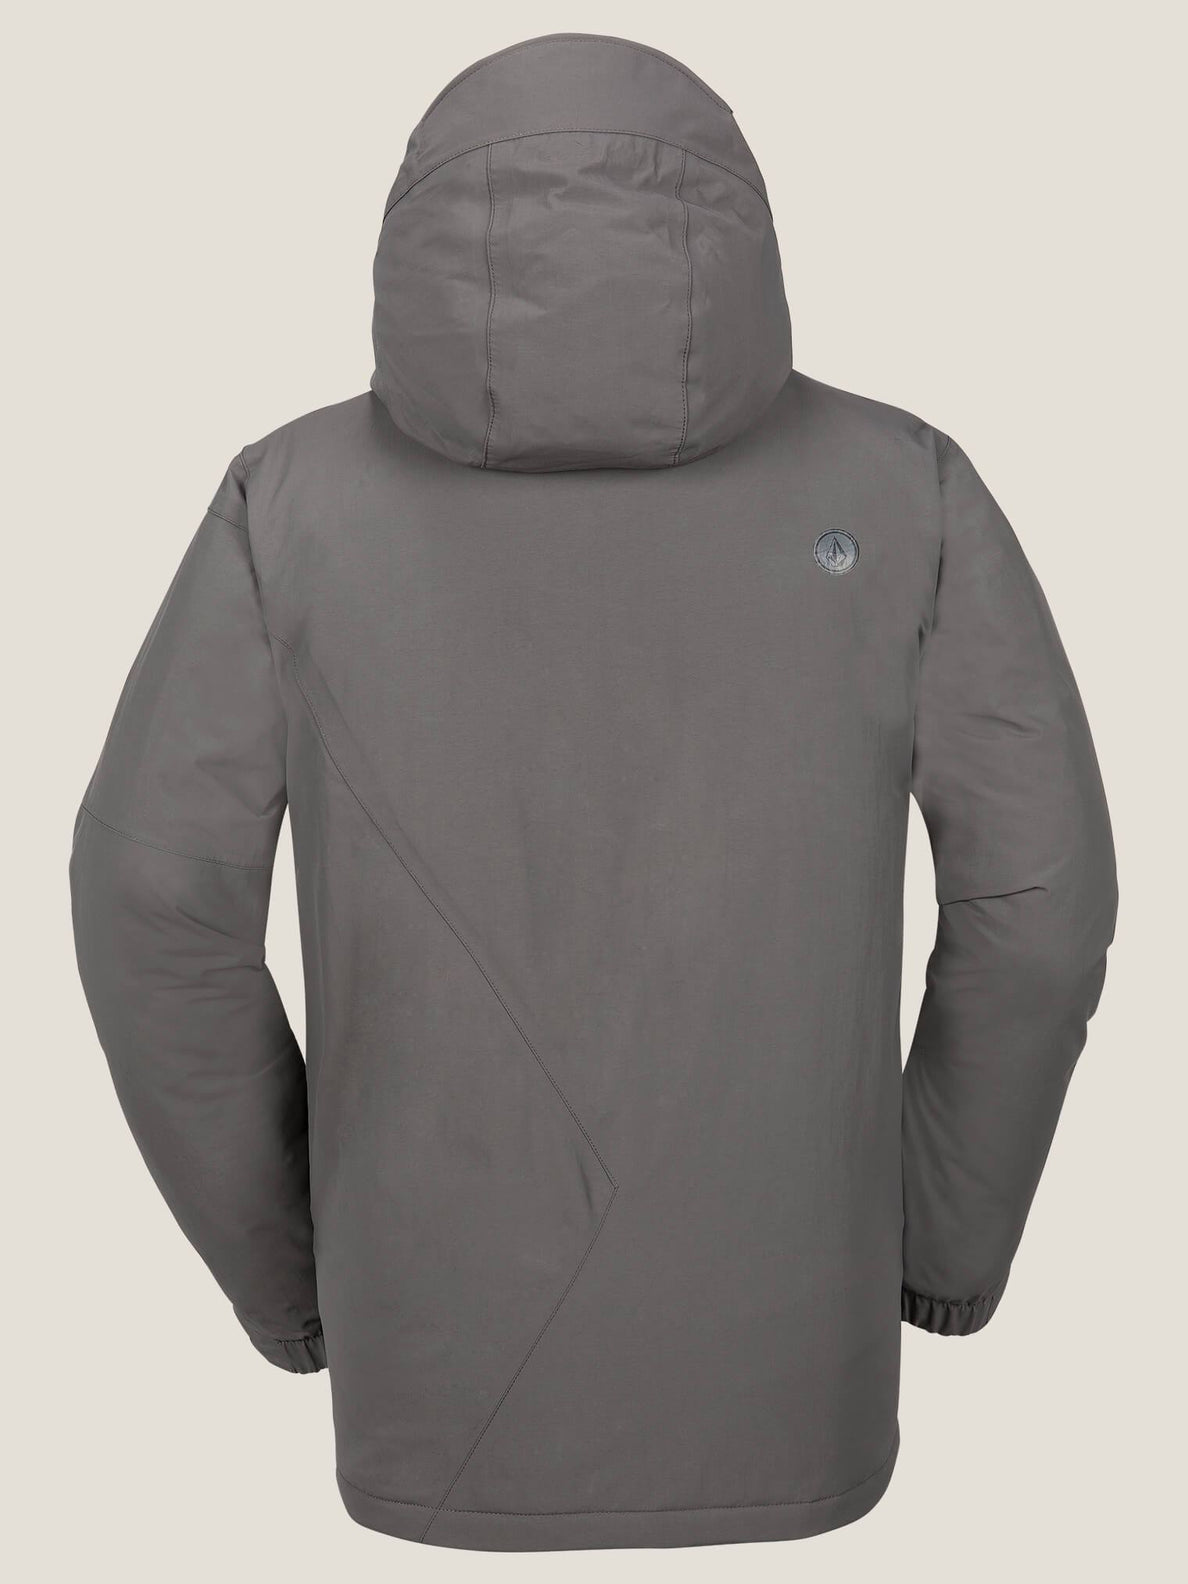 L Insulated Gore-tex® Jacket In Charcoal Grey, Back View